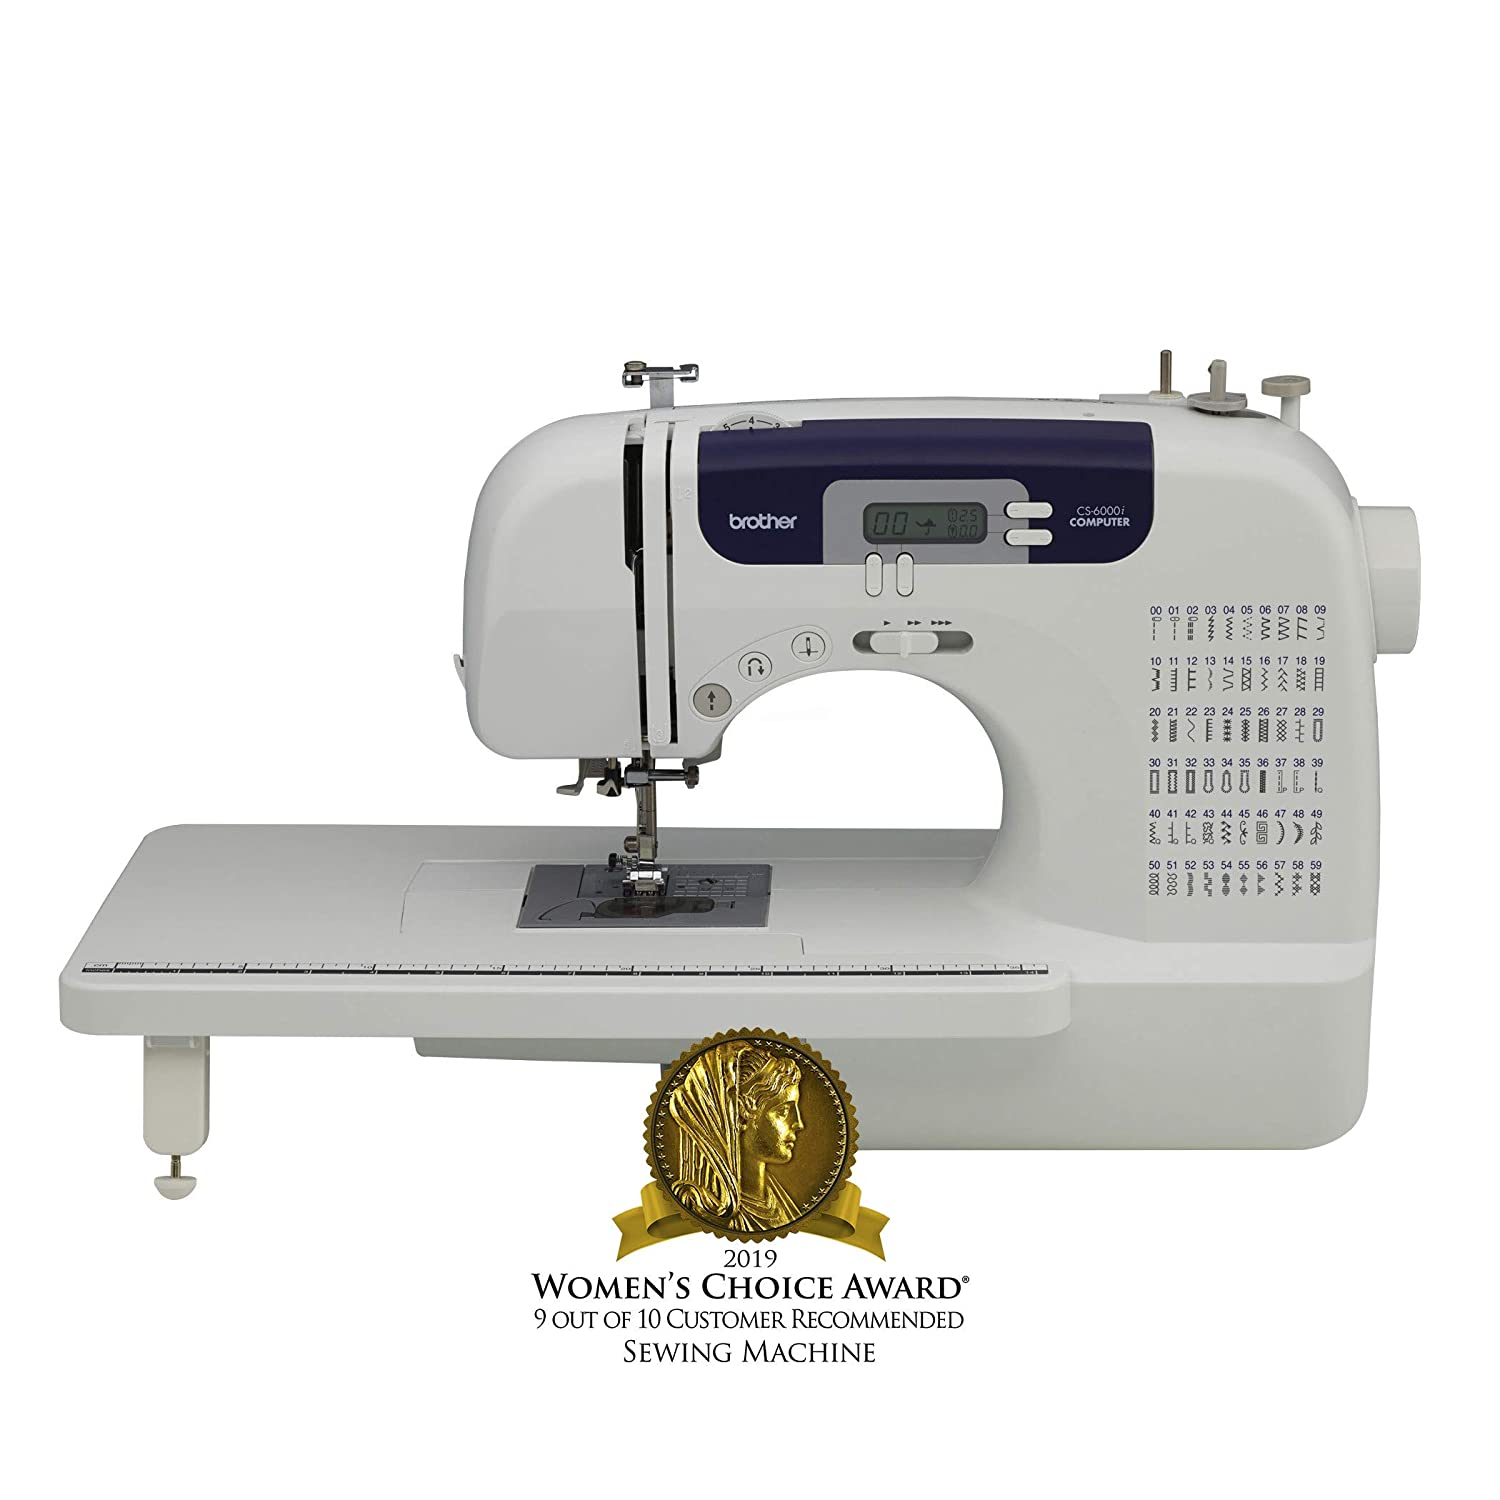 Brother Sewing and Quilting Machine, CS6000i, 60 Built-In Stitches, 7 styles of 1-Step Auto-Size Buttonholes, Wide Table